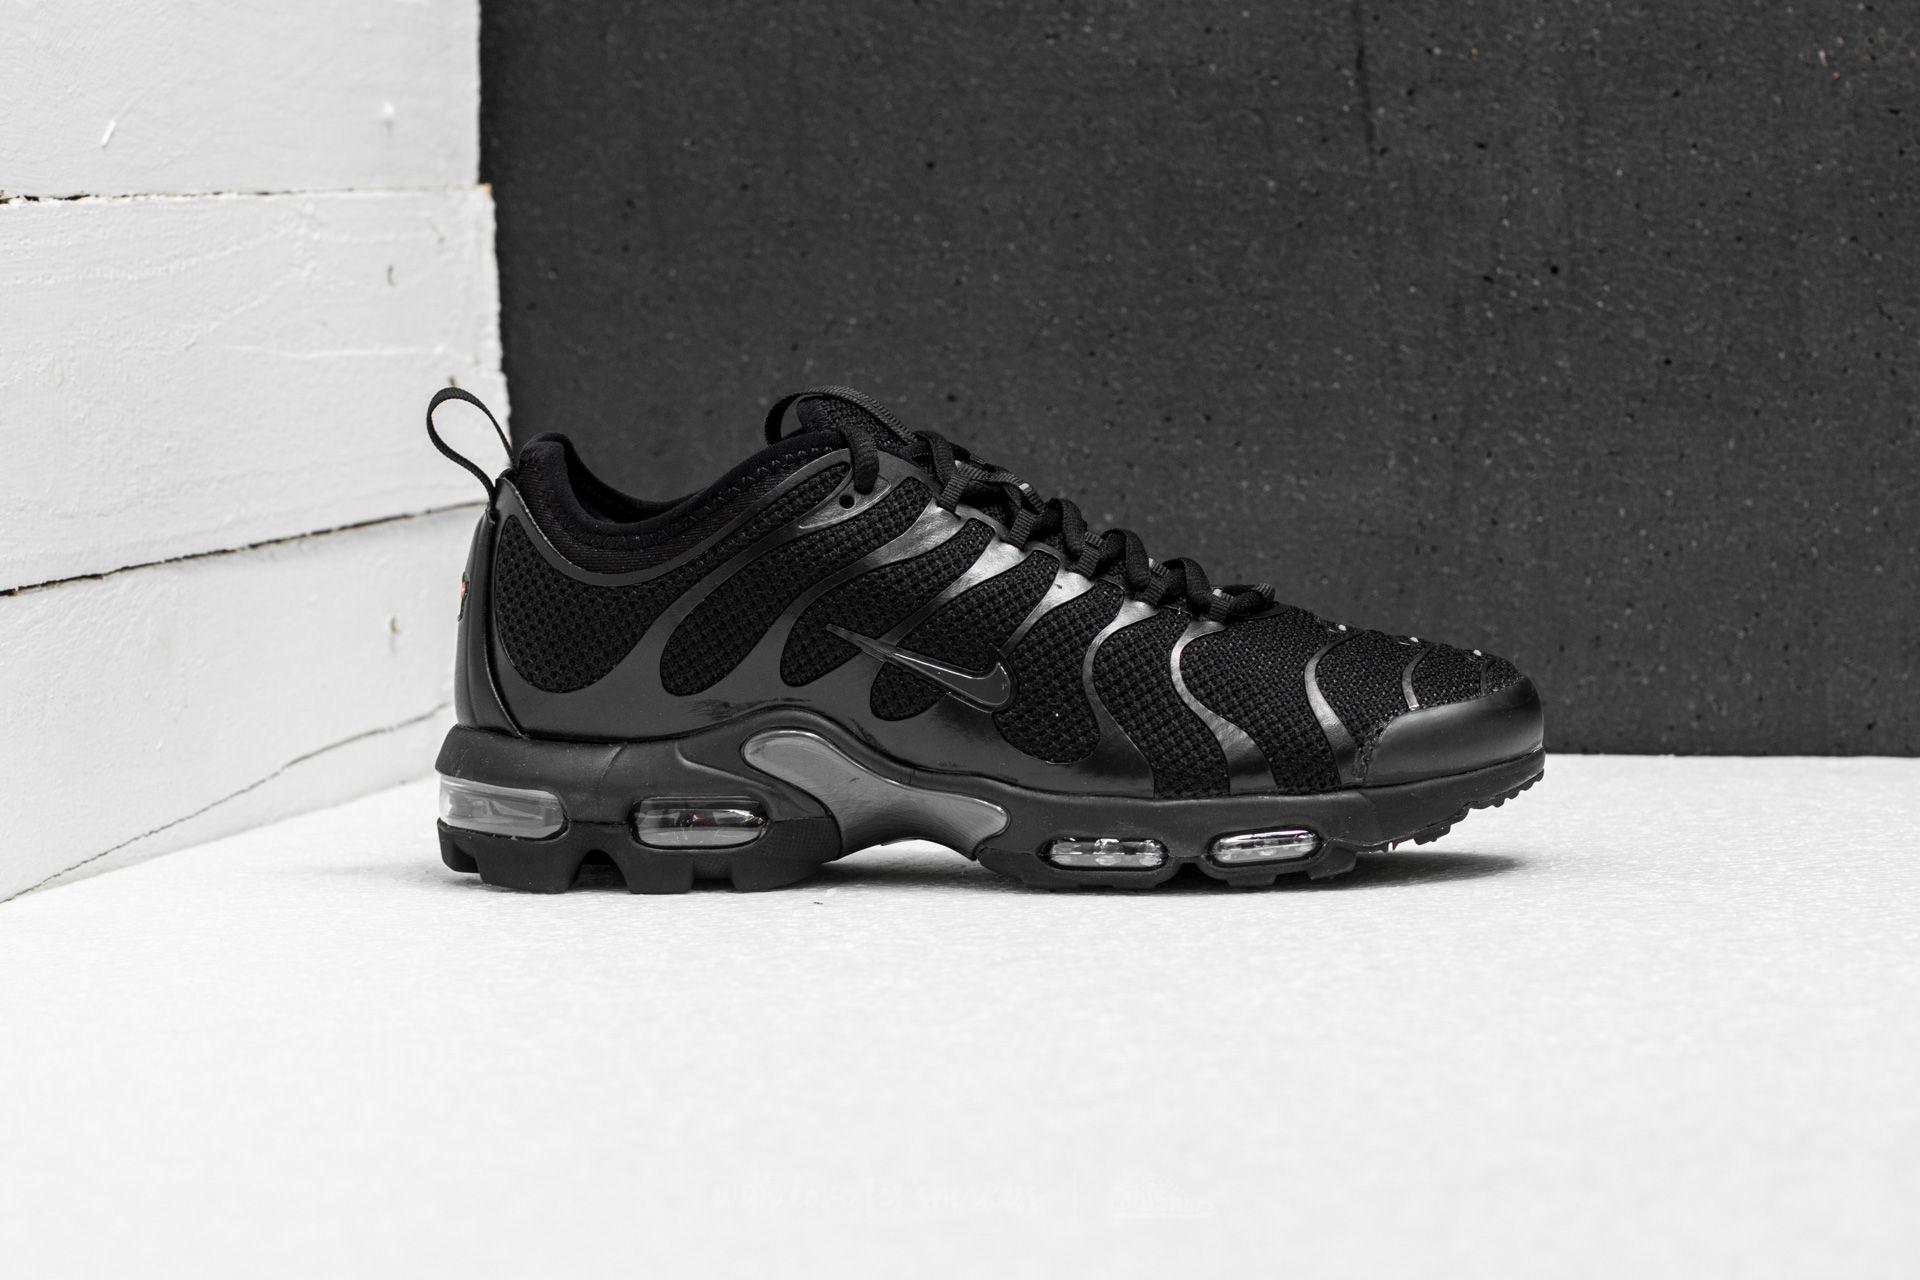 best online cheap prices cute Air Max Plus Tn Ultra Black/ Anthracite-black